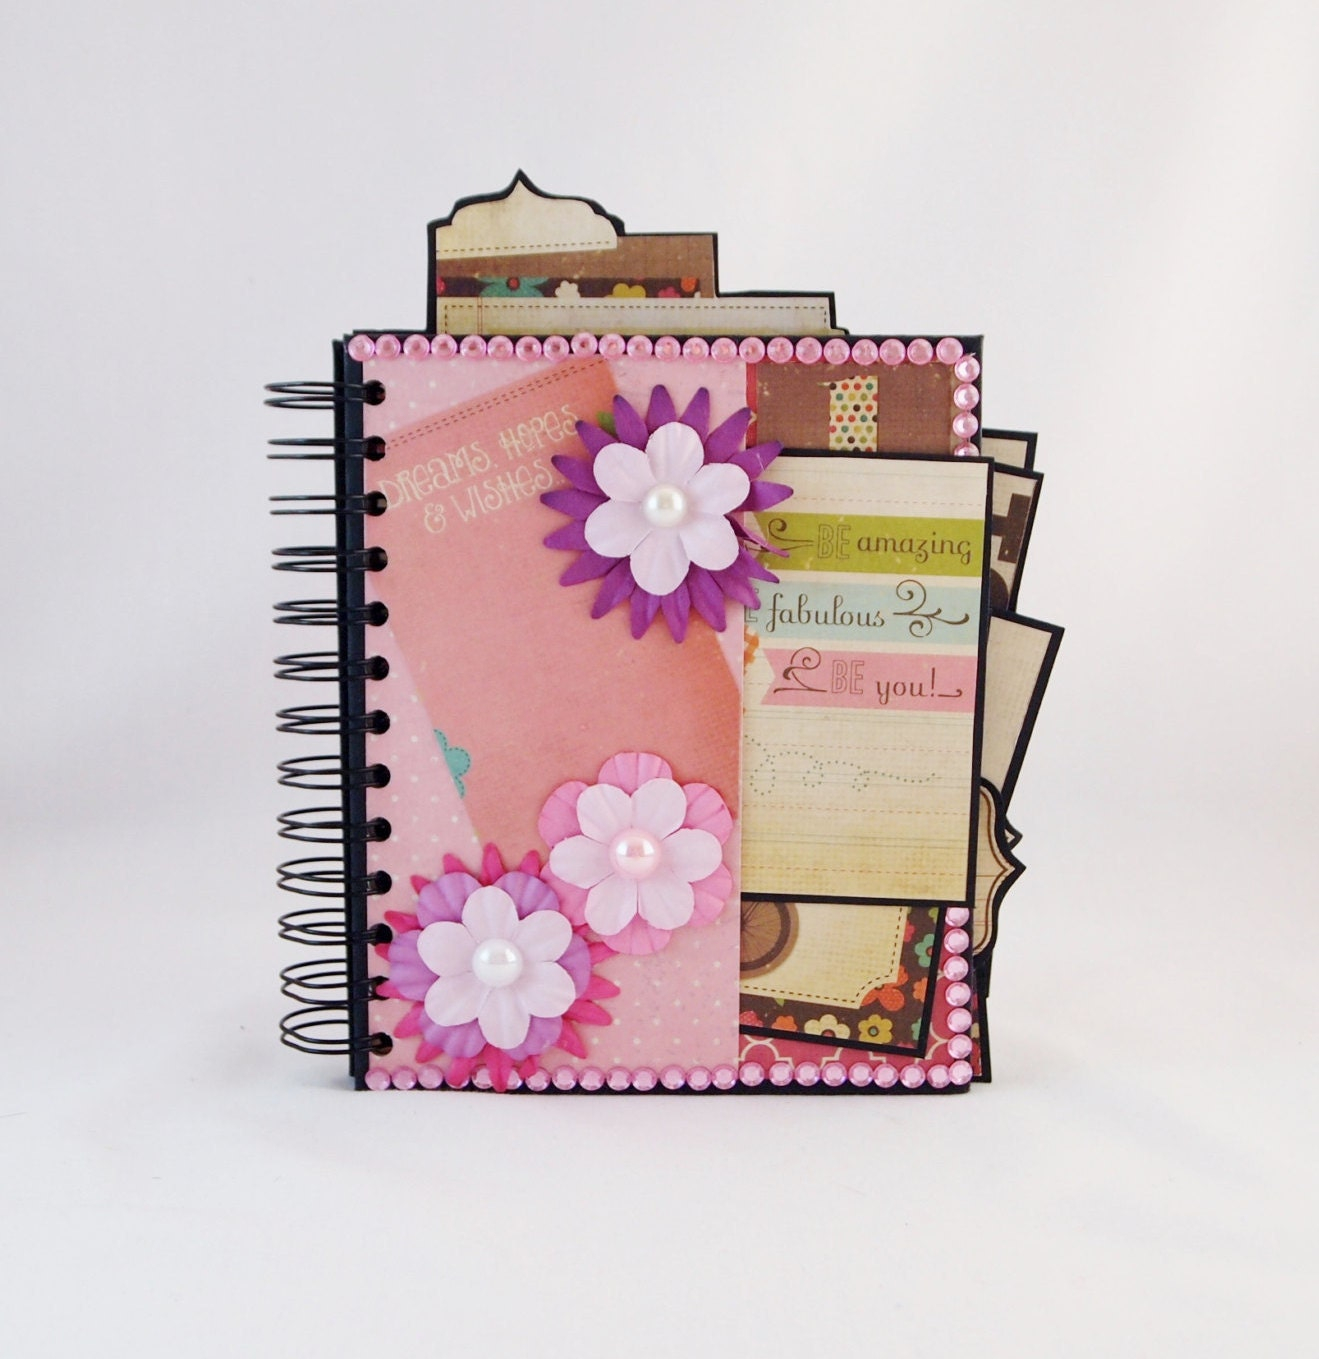 How to scrapbook wedding album - Sold By Foreveryourshandmade